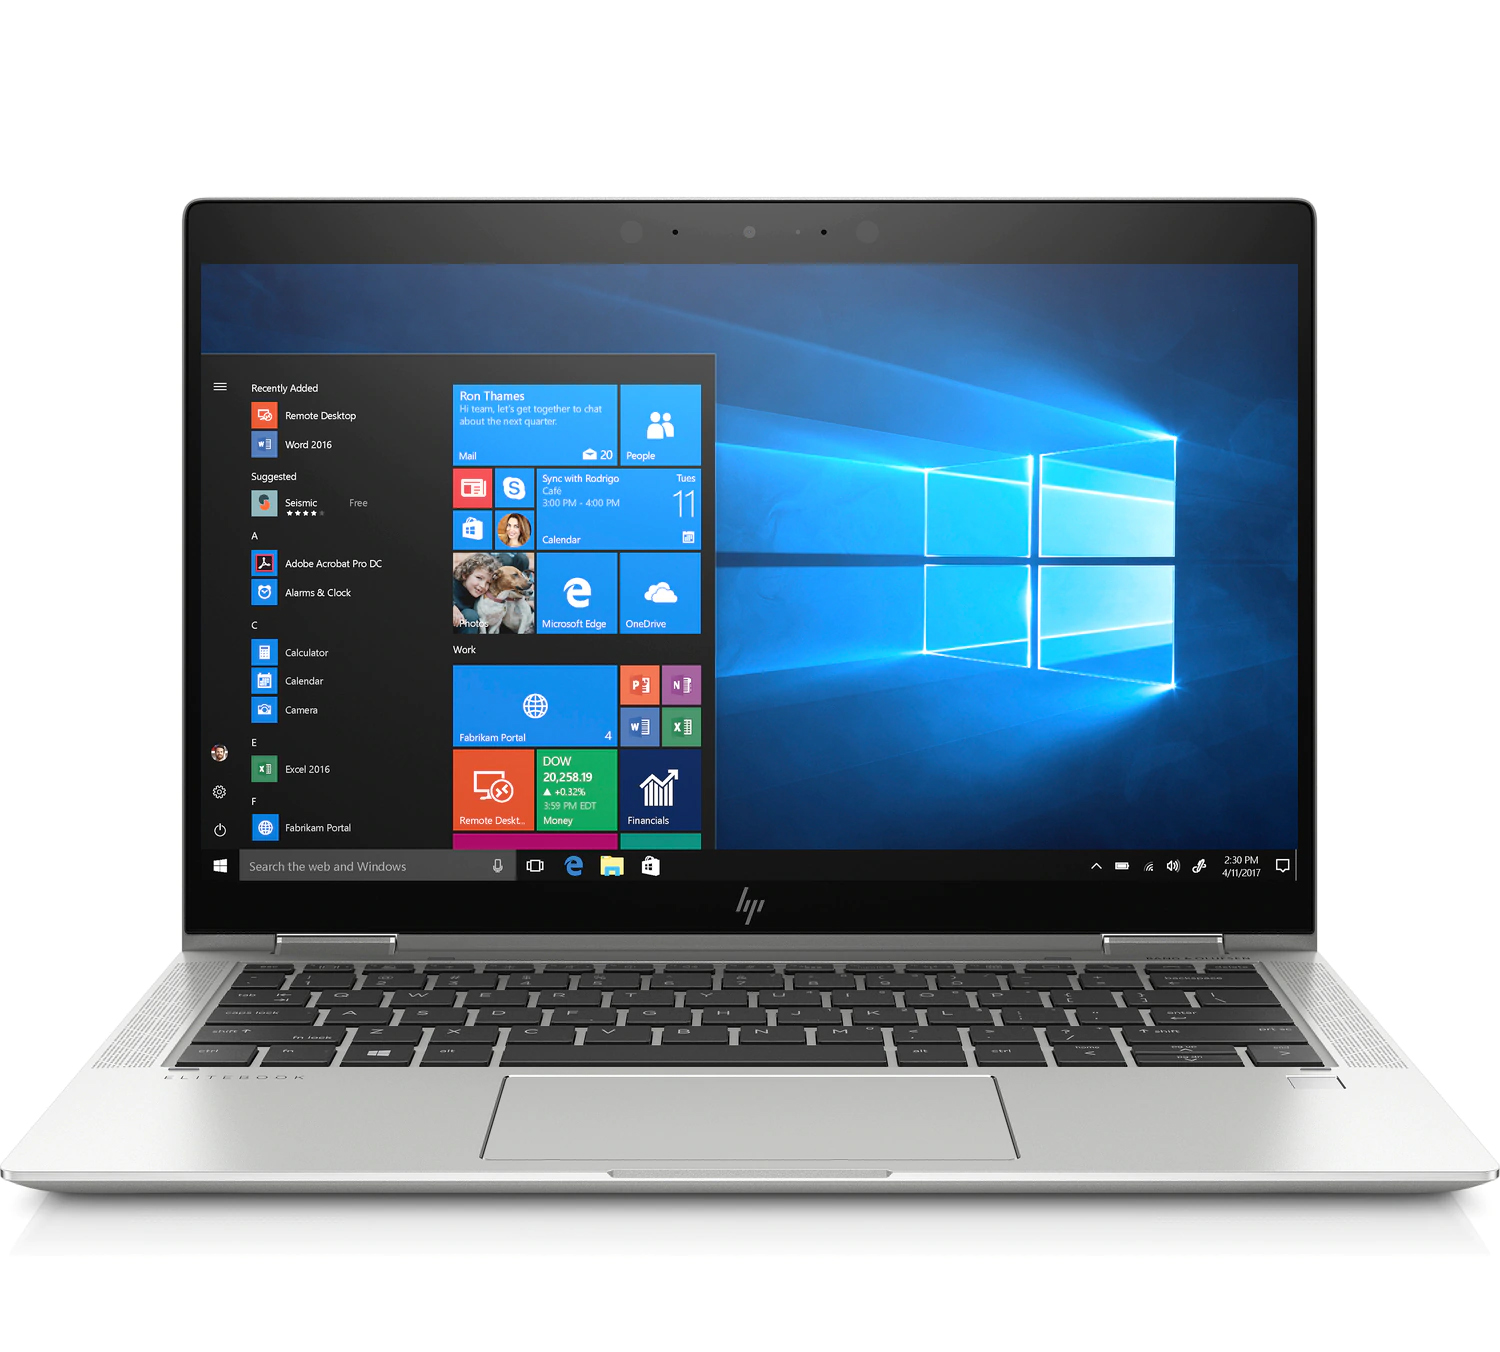 HP EliteBook x360 1030 G4 Laptop 8TW31PA 13.3inch FHD Touchscreen Display i7-8565U 8GB RAM 1TB SSD Win 10 Pro